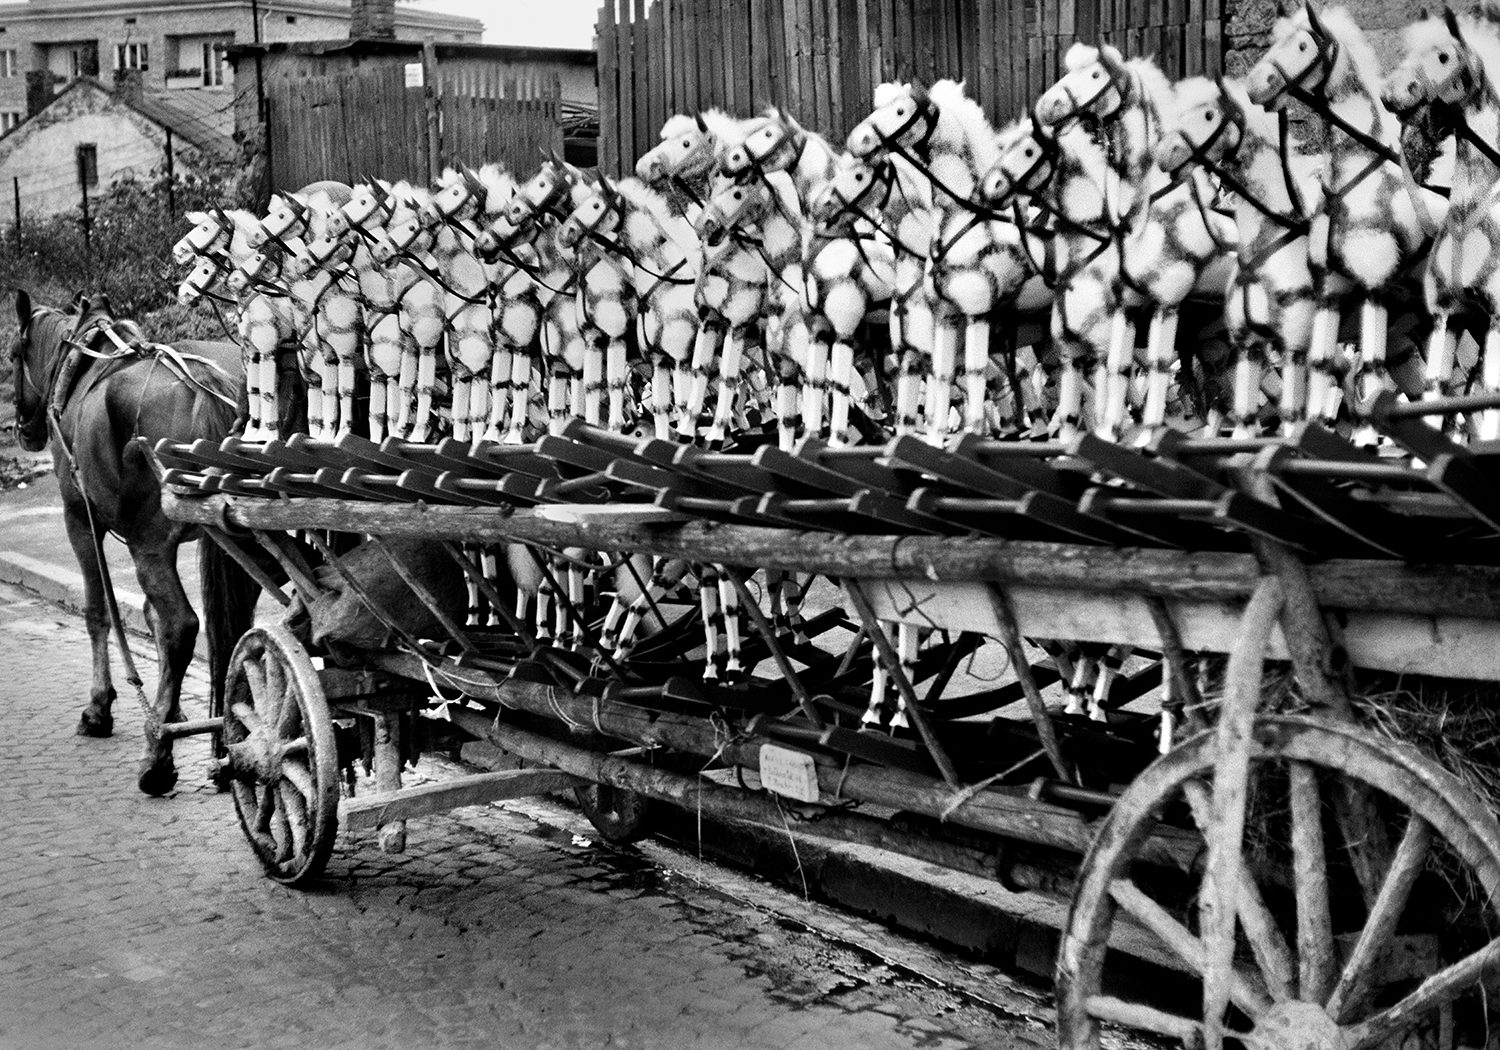 rocking horses on a wooden horse cart